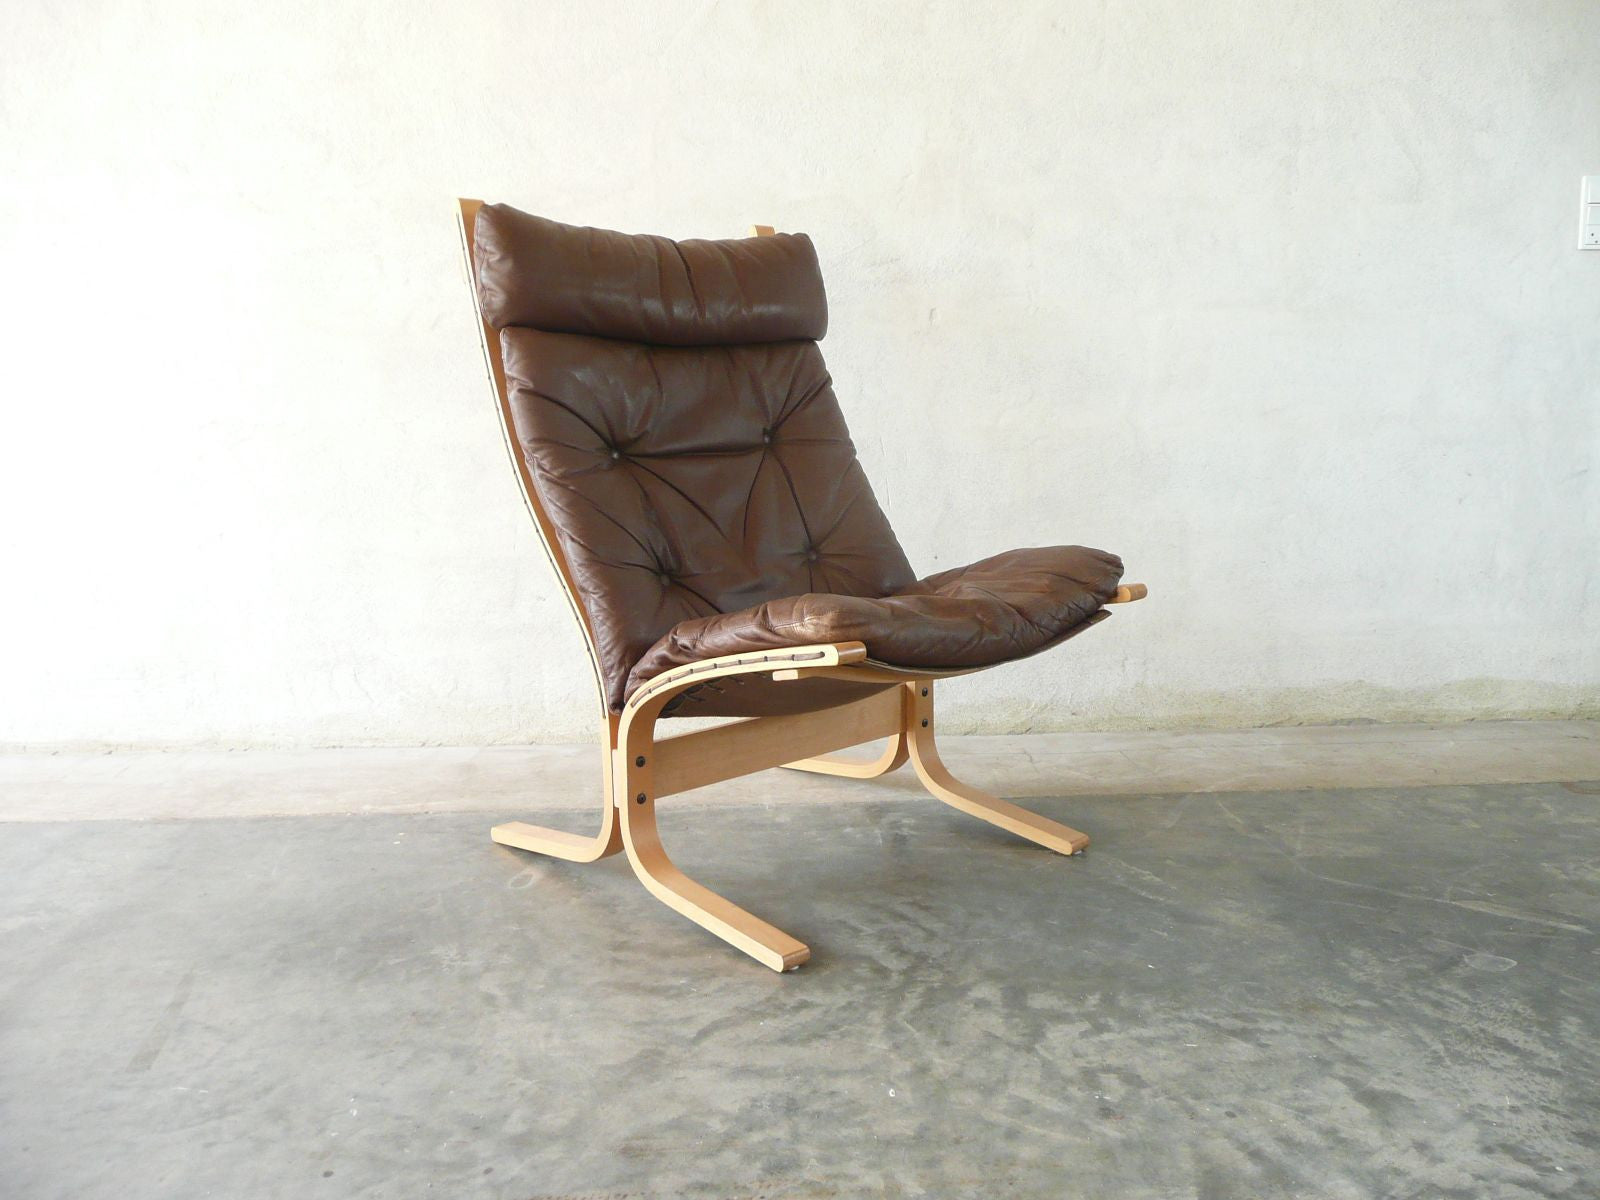 Siesta lounge chair by Westnofa